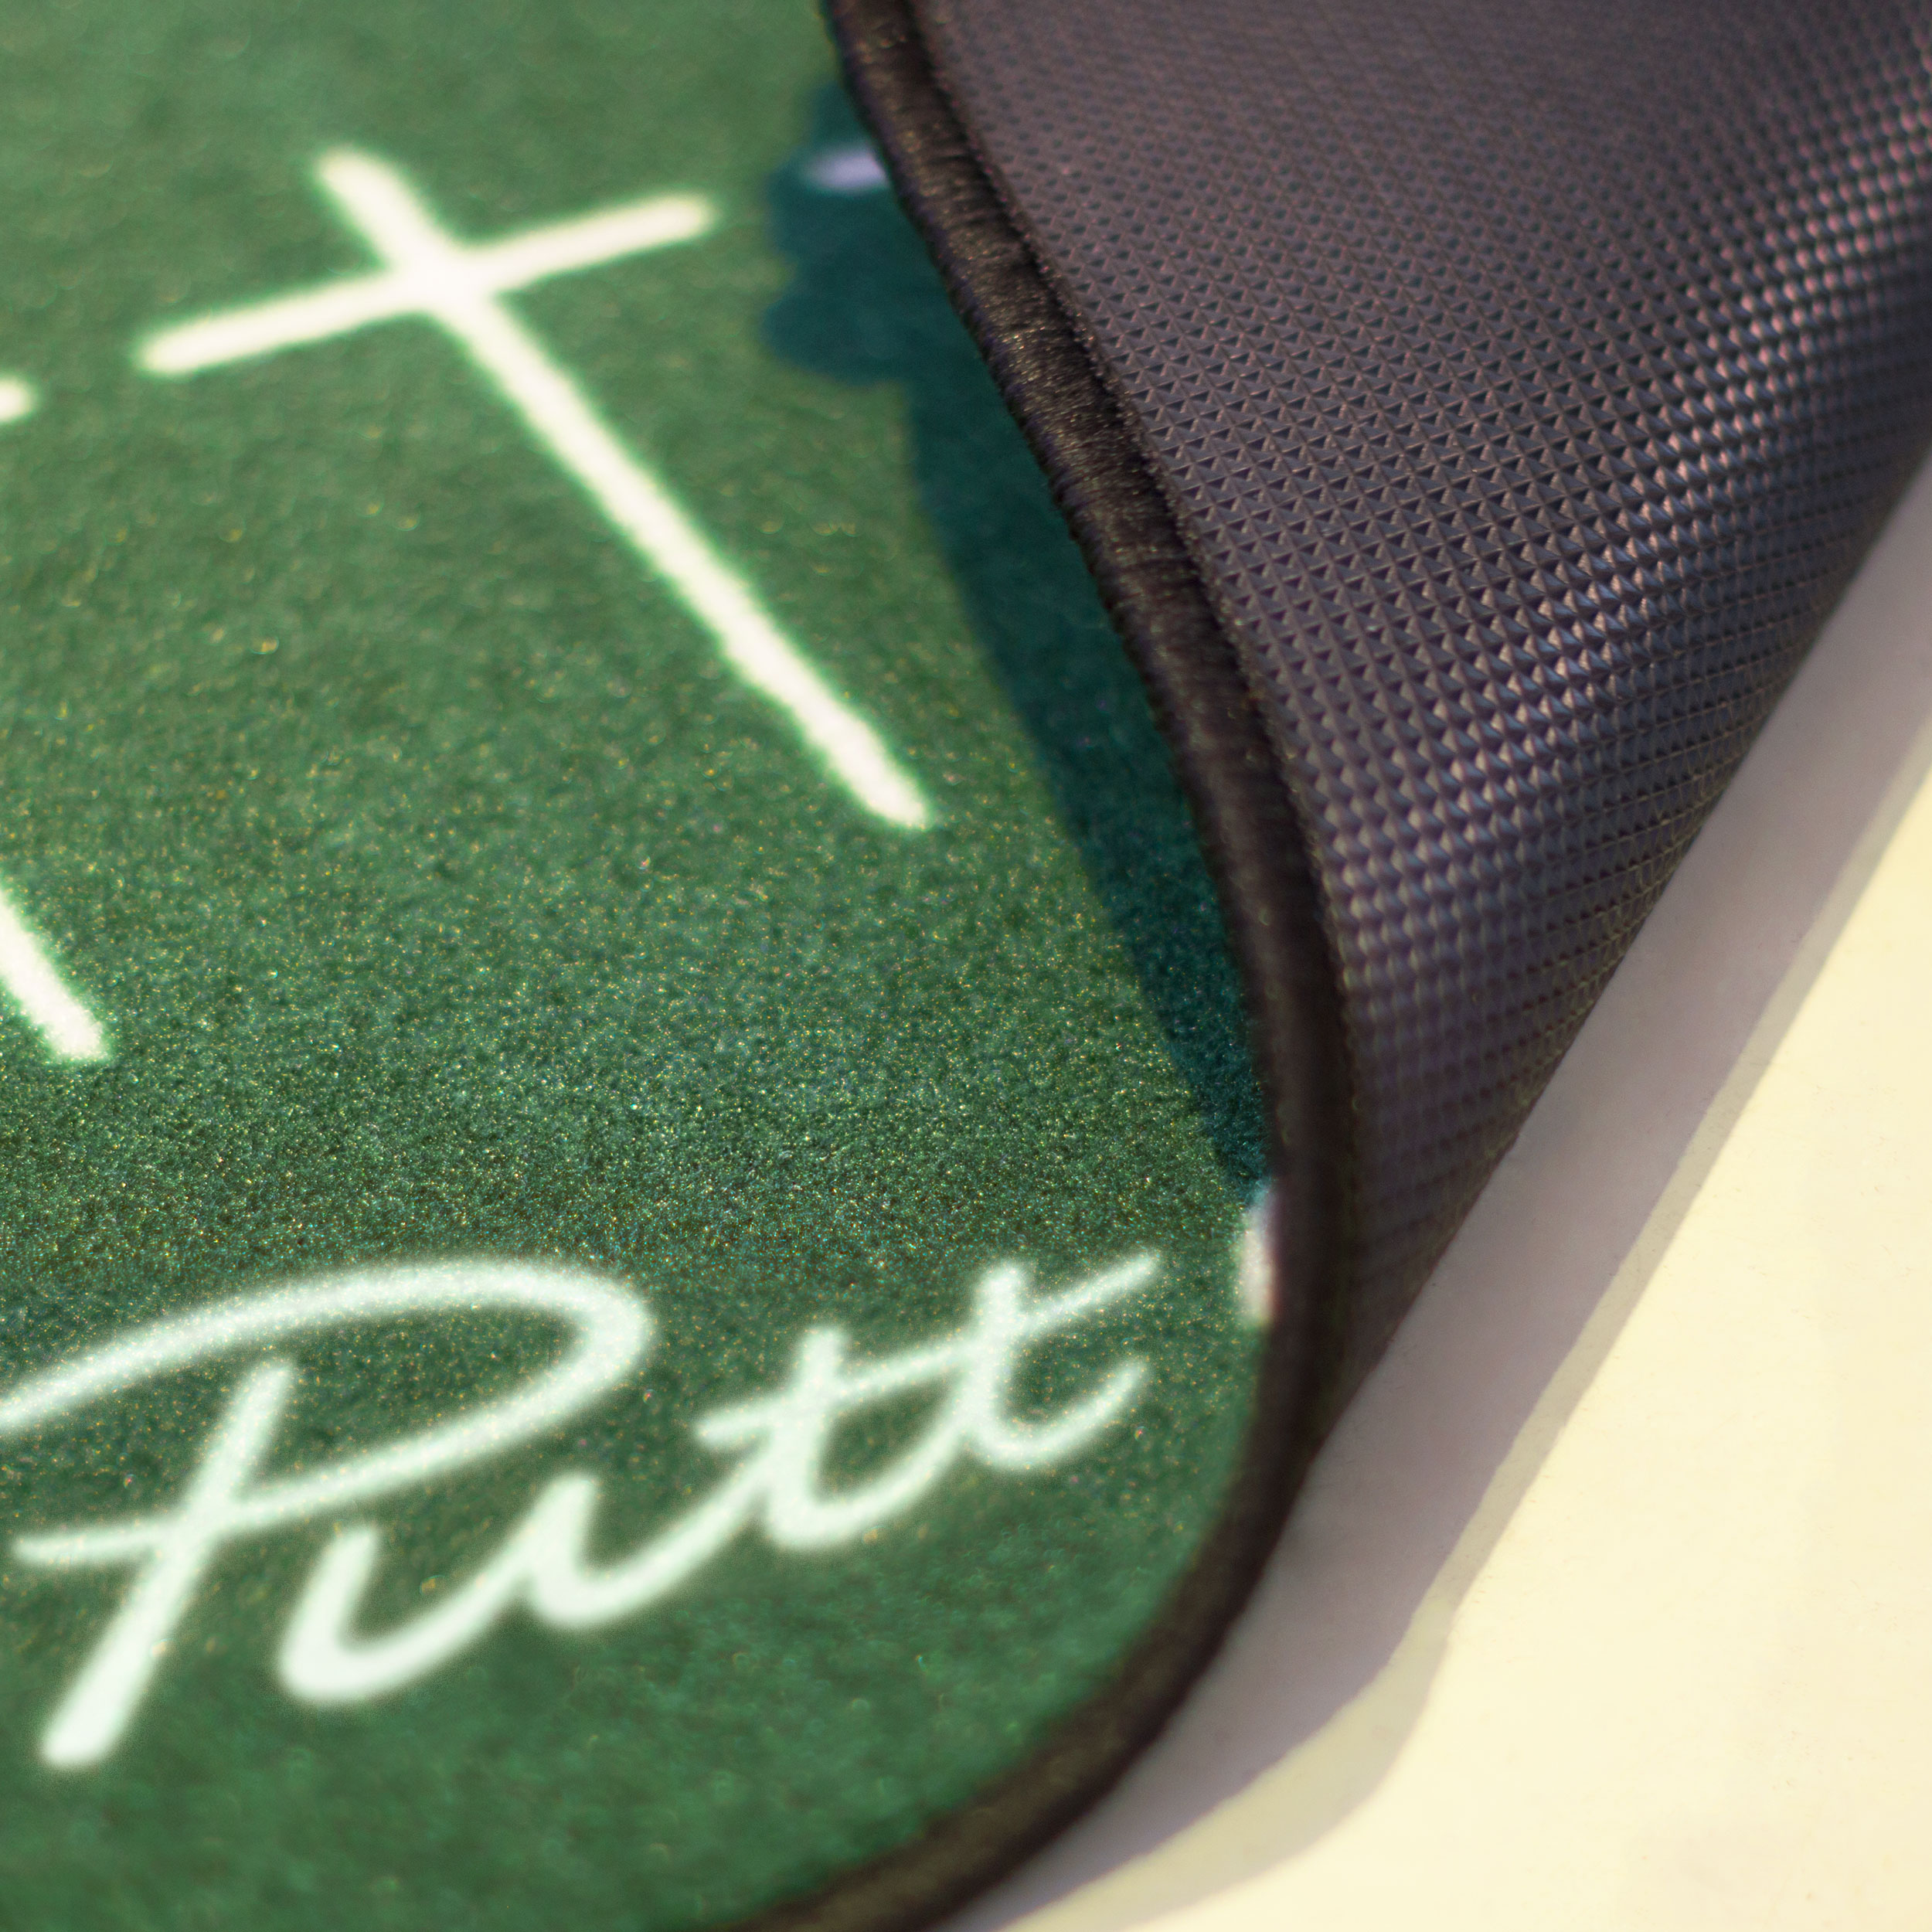 Rolls Flat - With extra-thick TPR rubber backing, this mat rolls flat straight out of the packaging, giving a consistently smooth and reliable roll, allowing you to focus on making your stroke the best it can be.